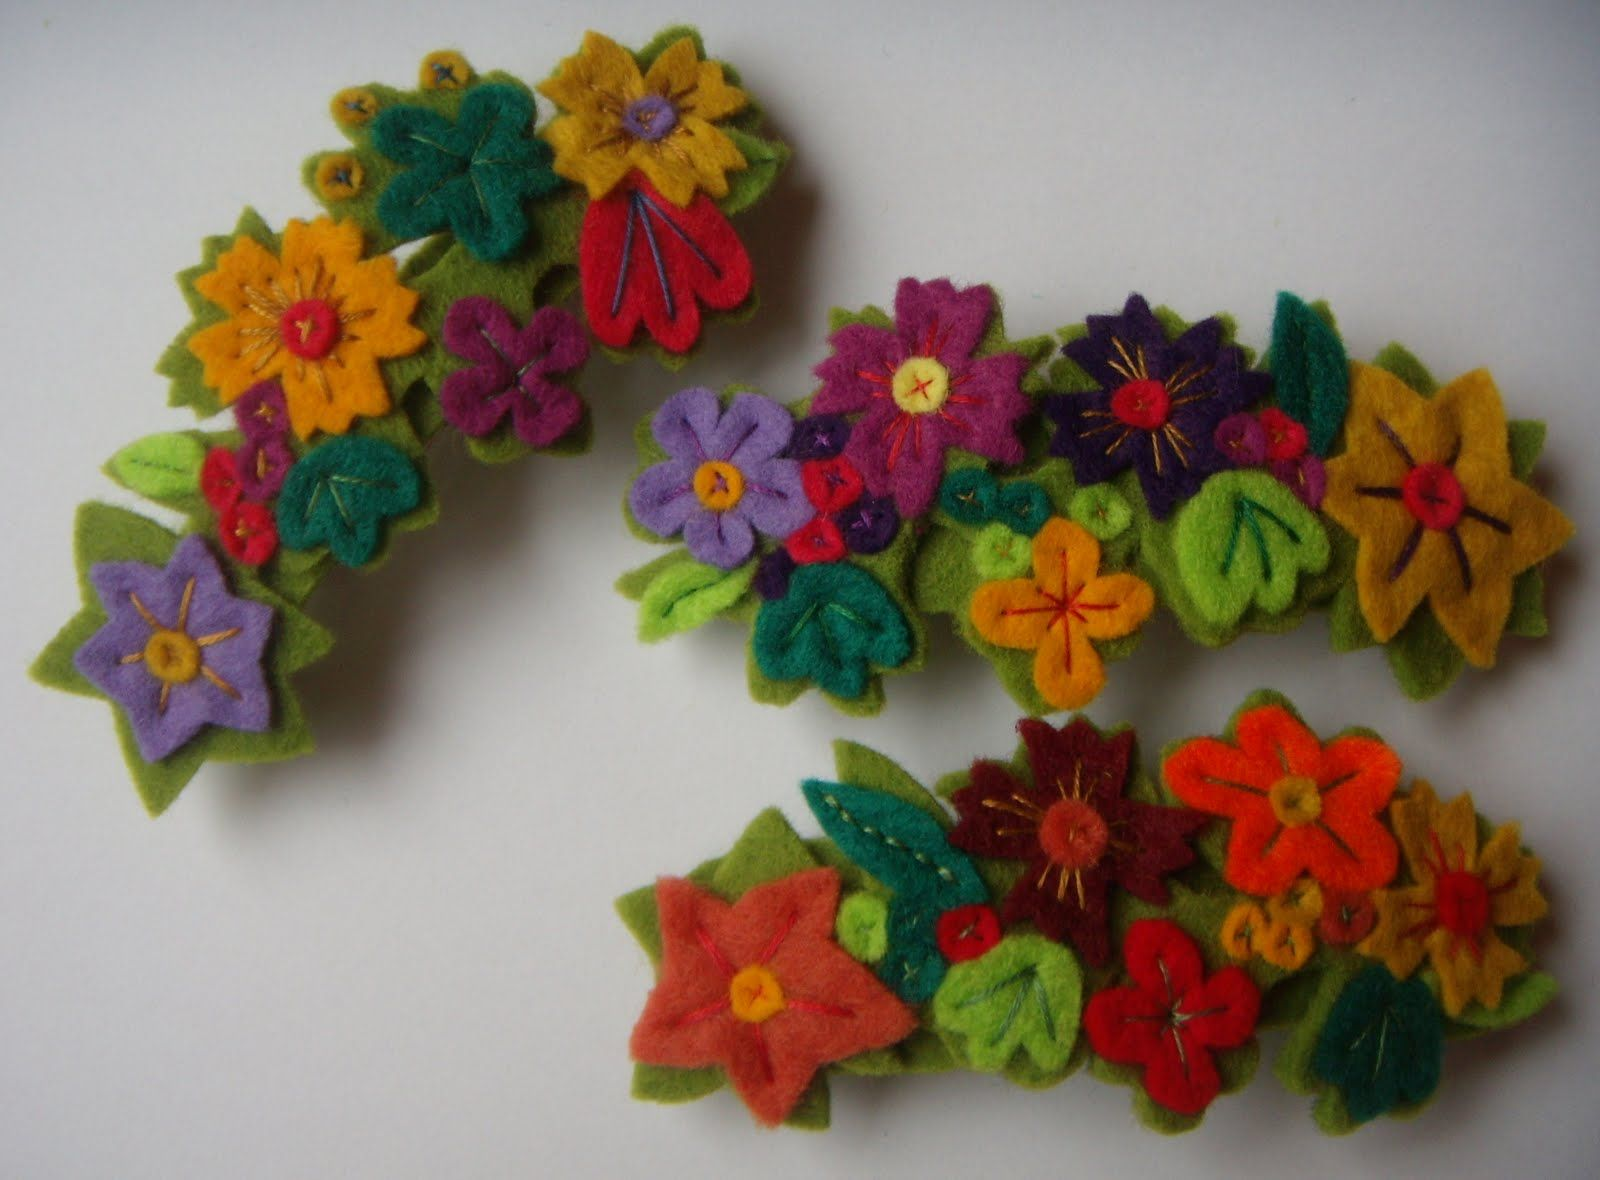 broches de fieltro - Buscar con Google